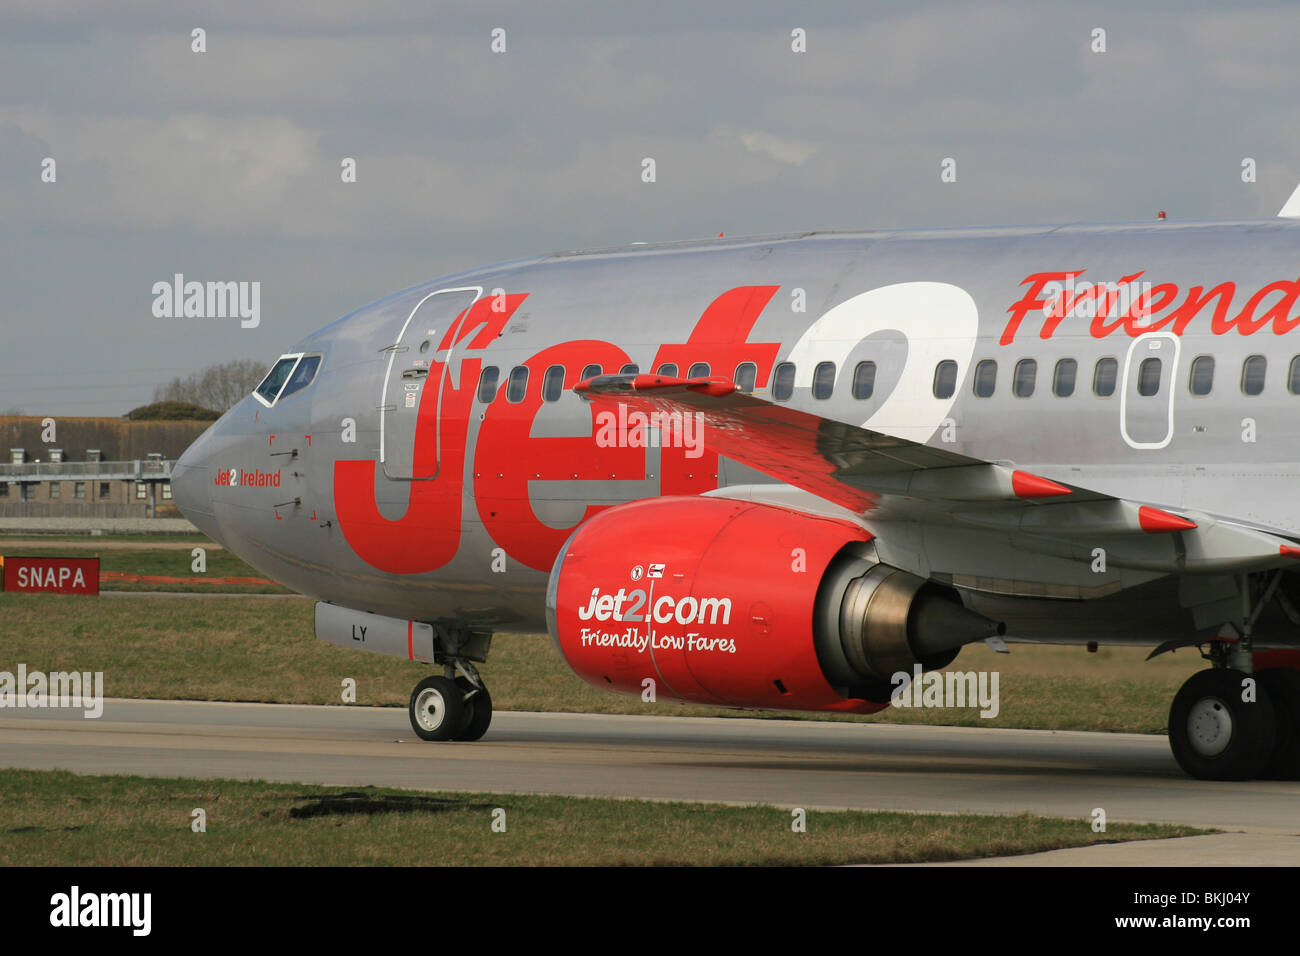 JET 2. TWO. LOW COST AIRLINE - Stock Image